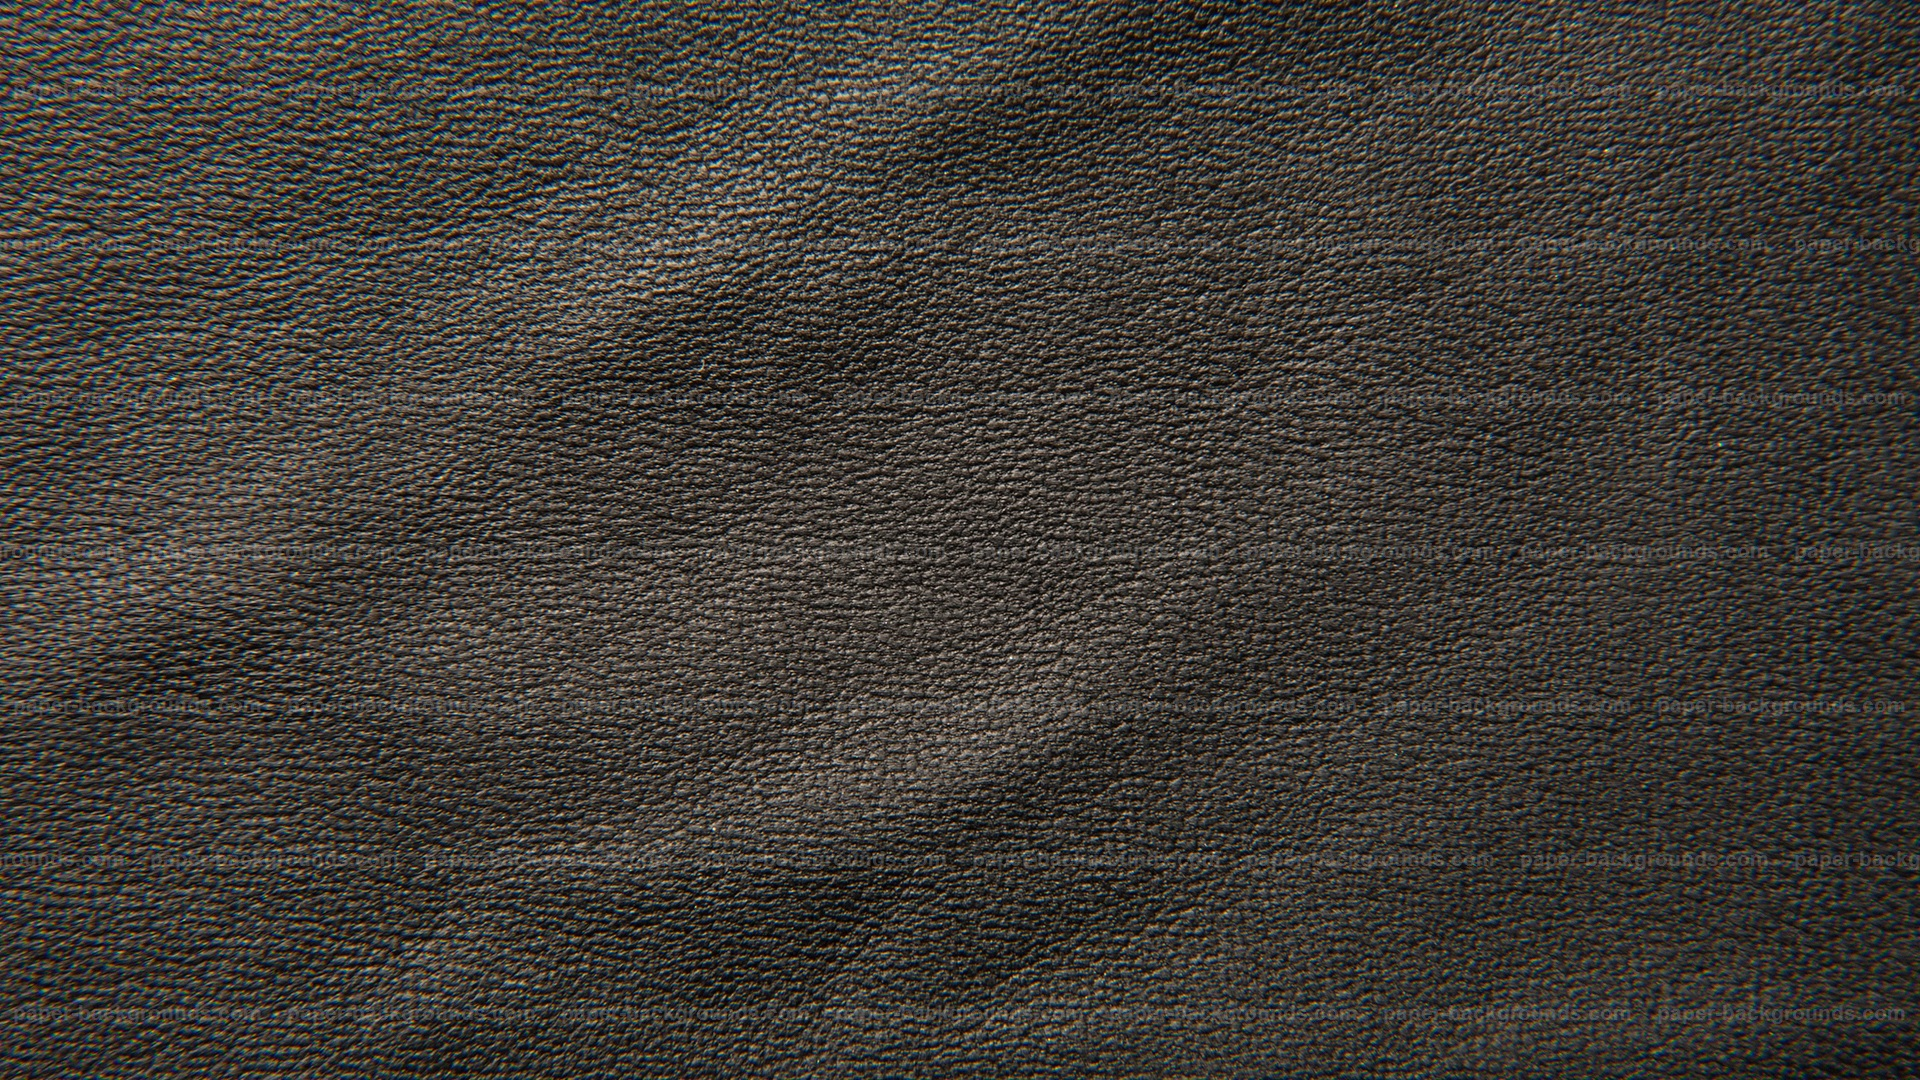 Smooth Black Leather Texture HD